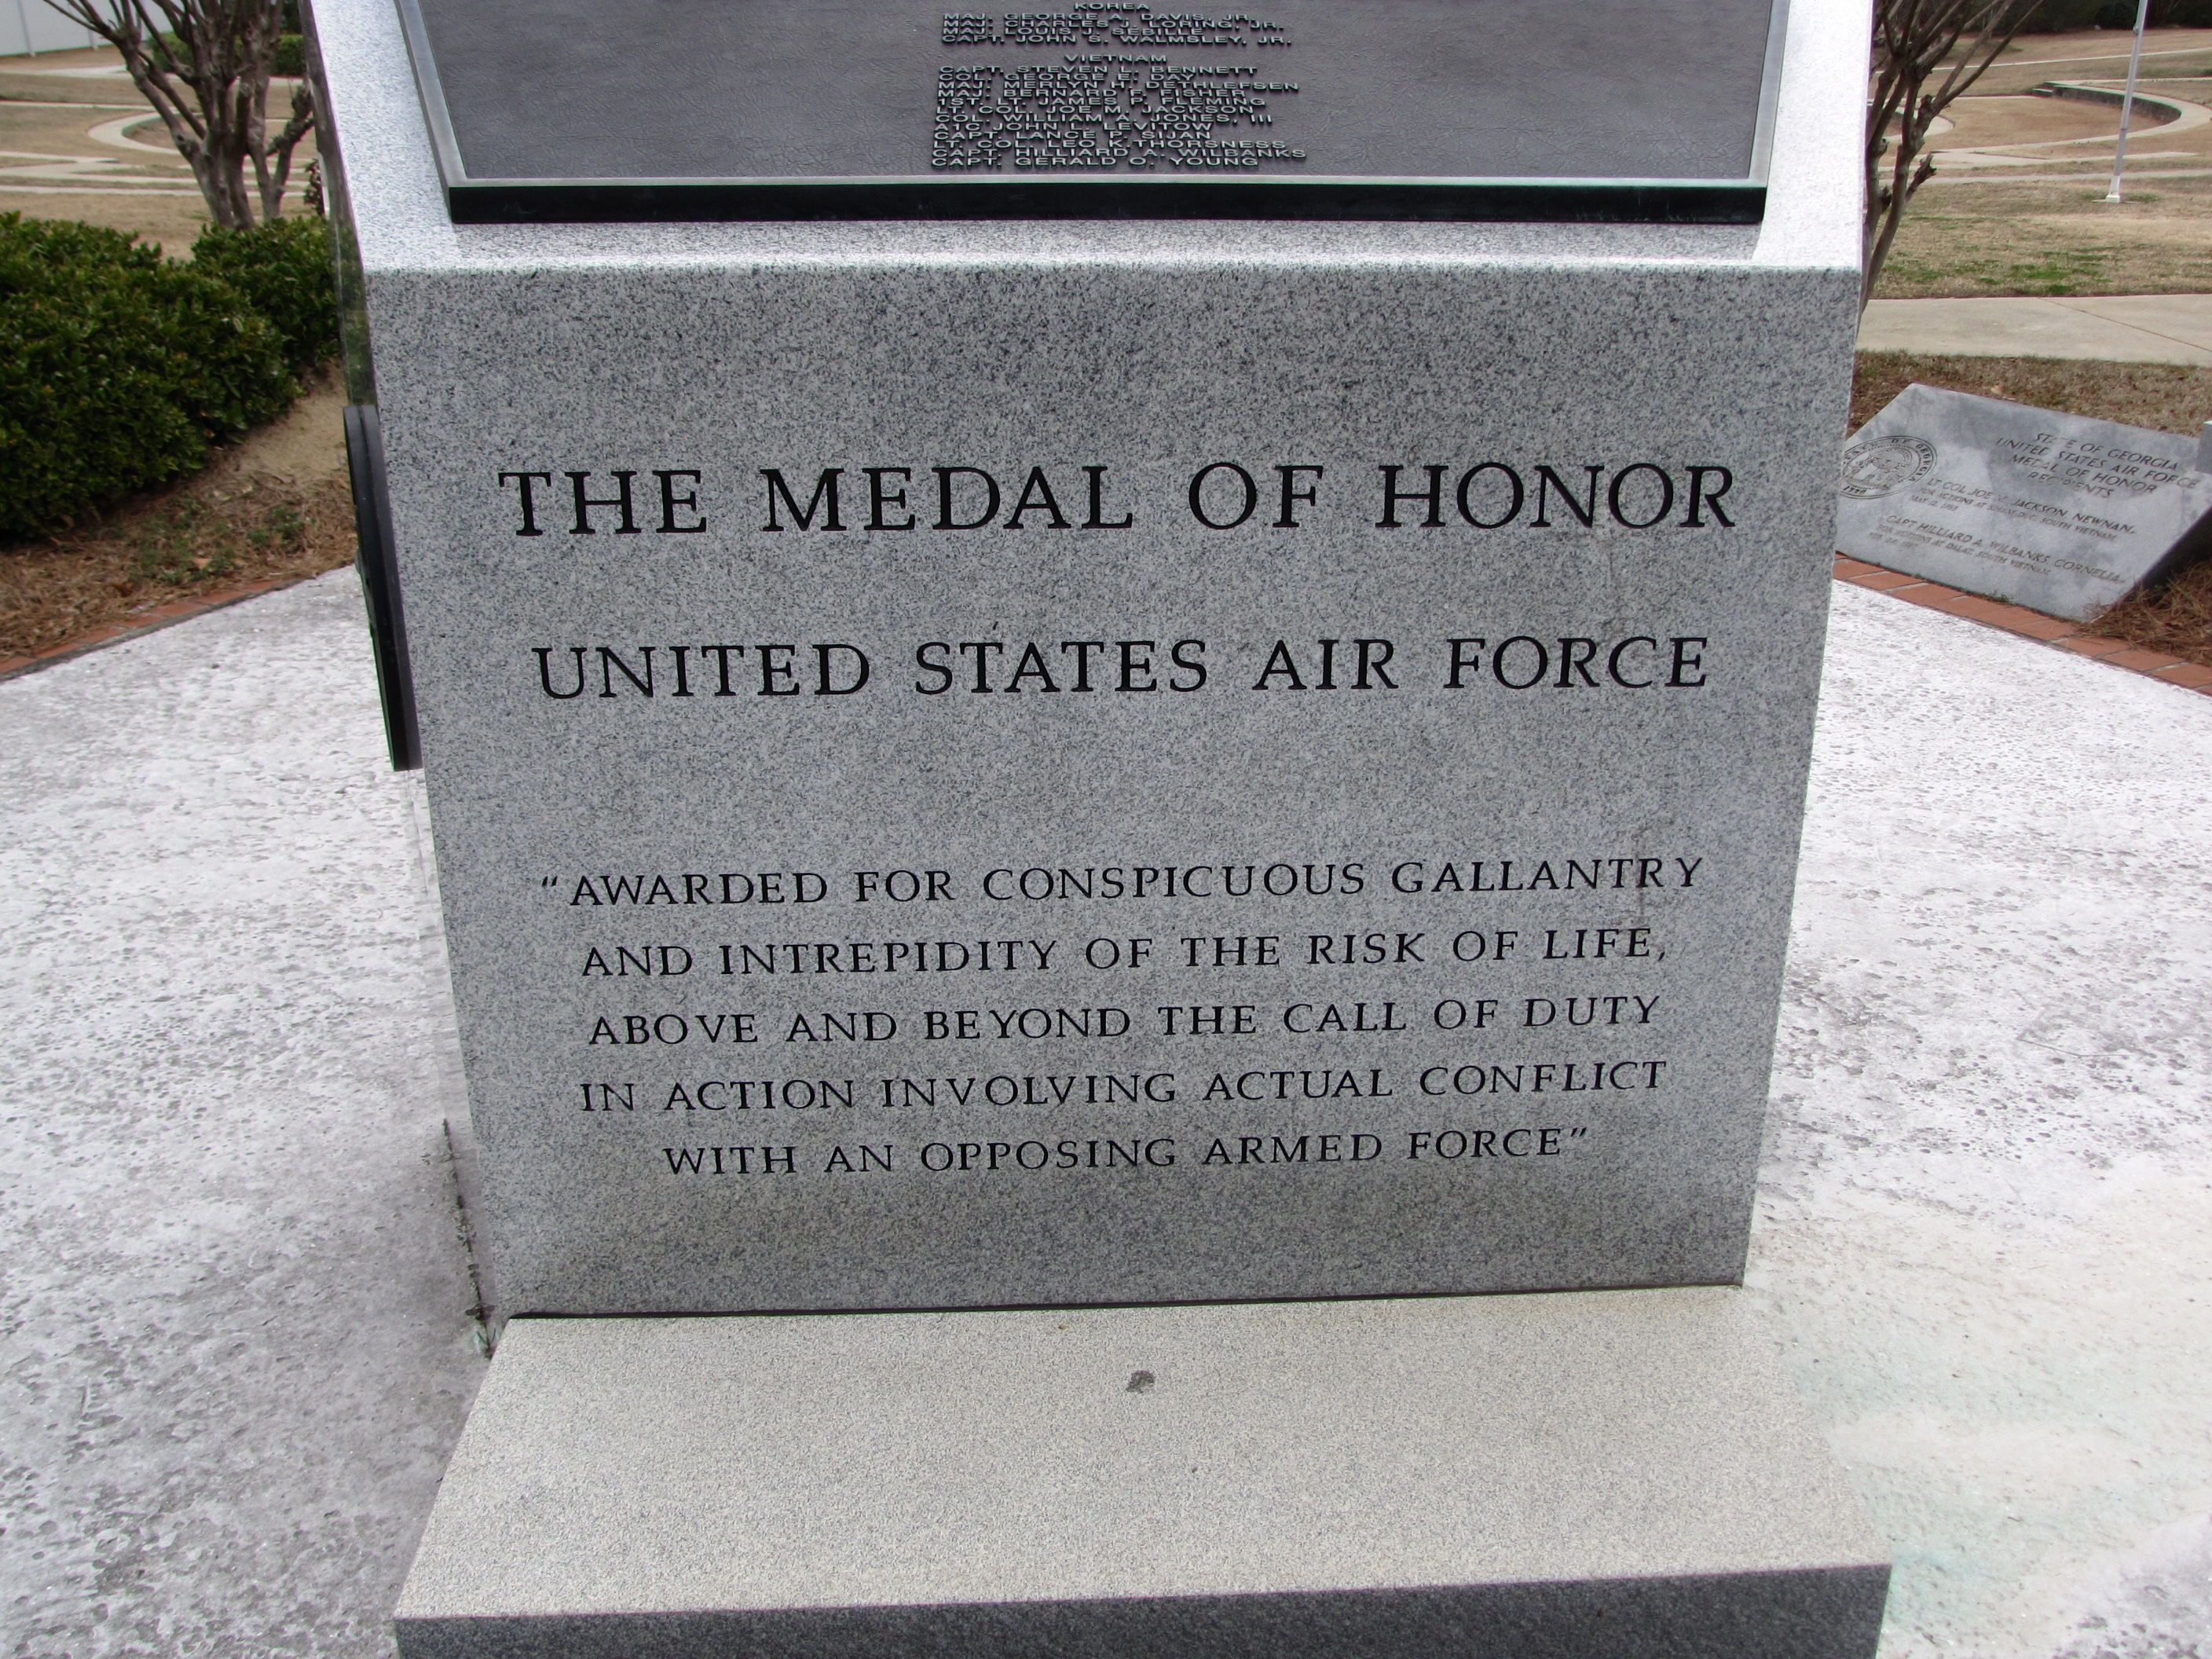 Text on base of memorial